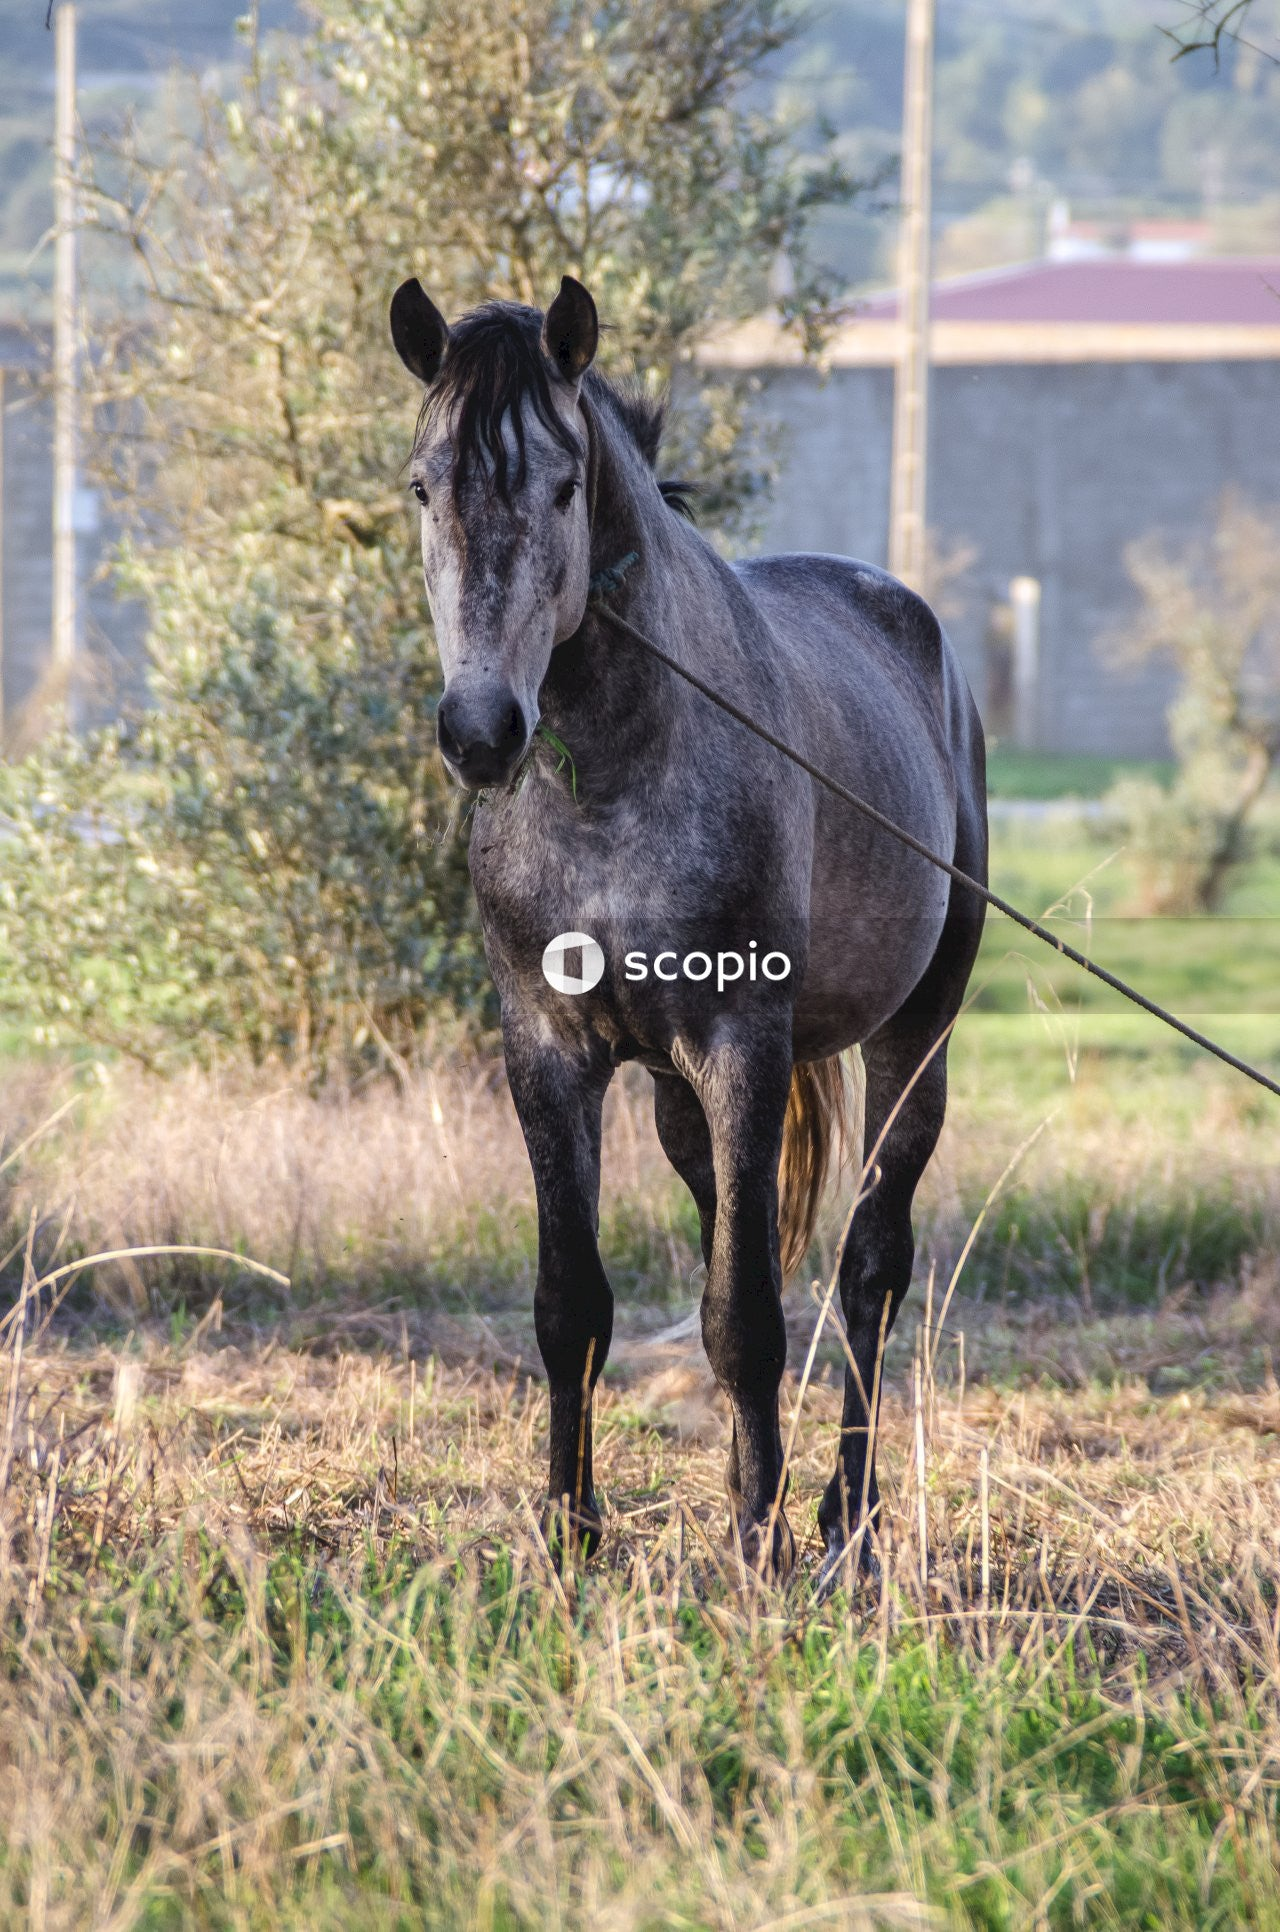 Black horse on brown grass field